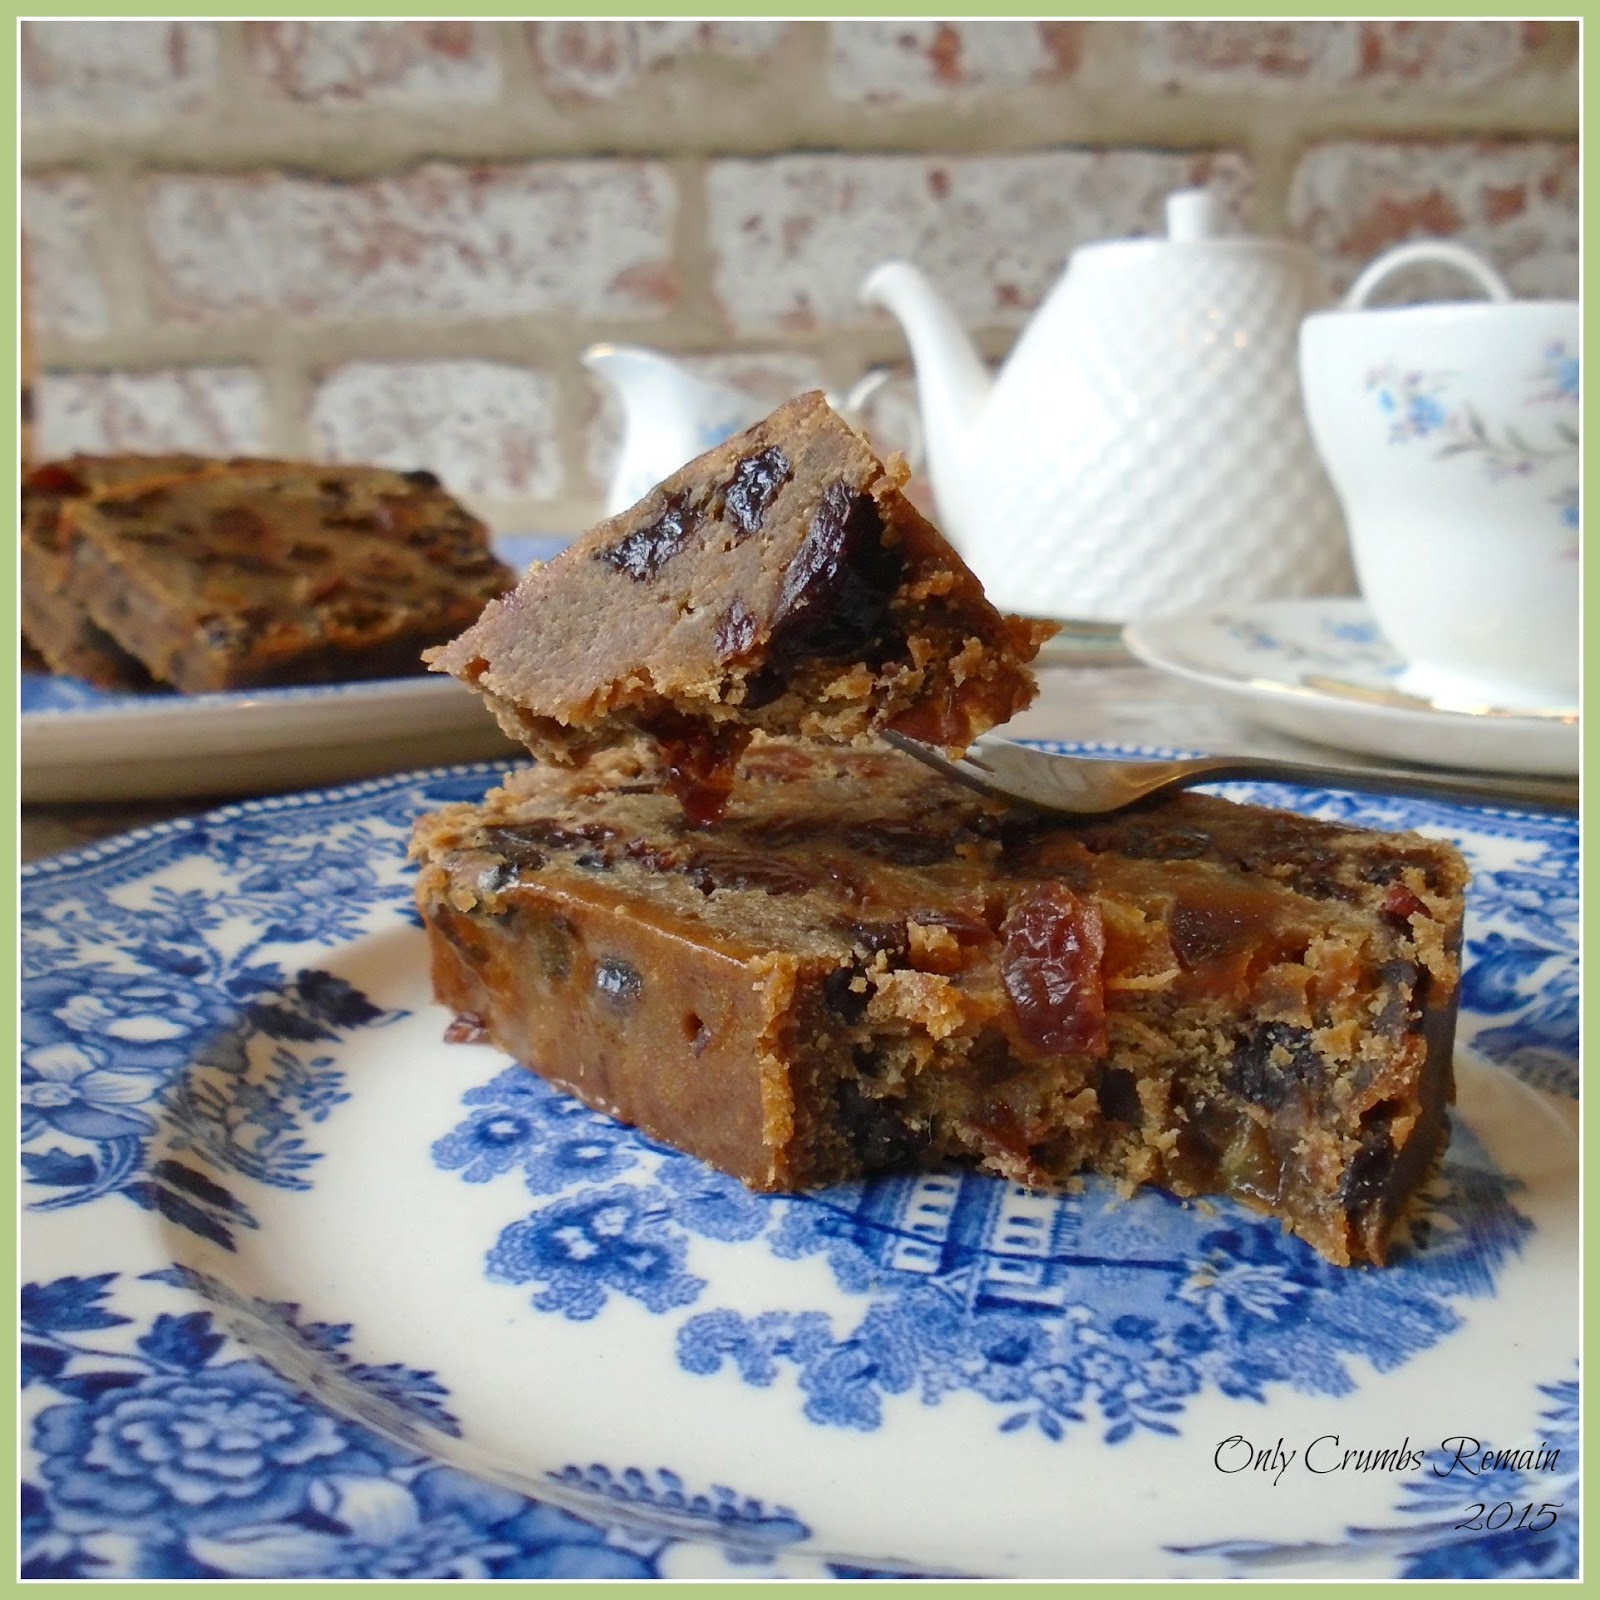 ly Crumbs Remain Rich Fruit Cake